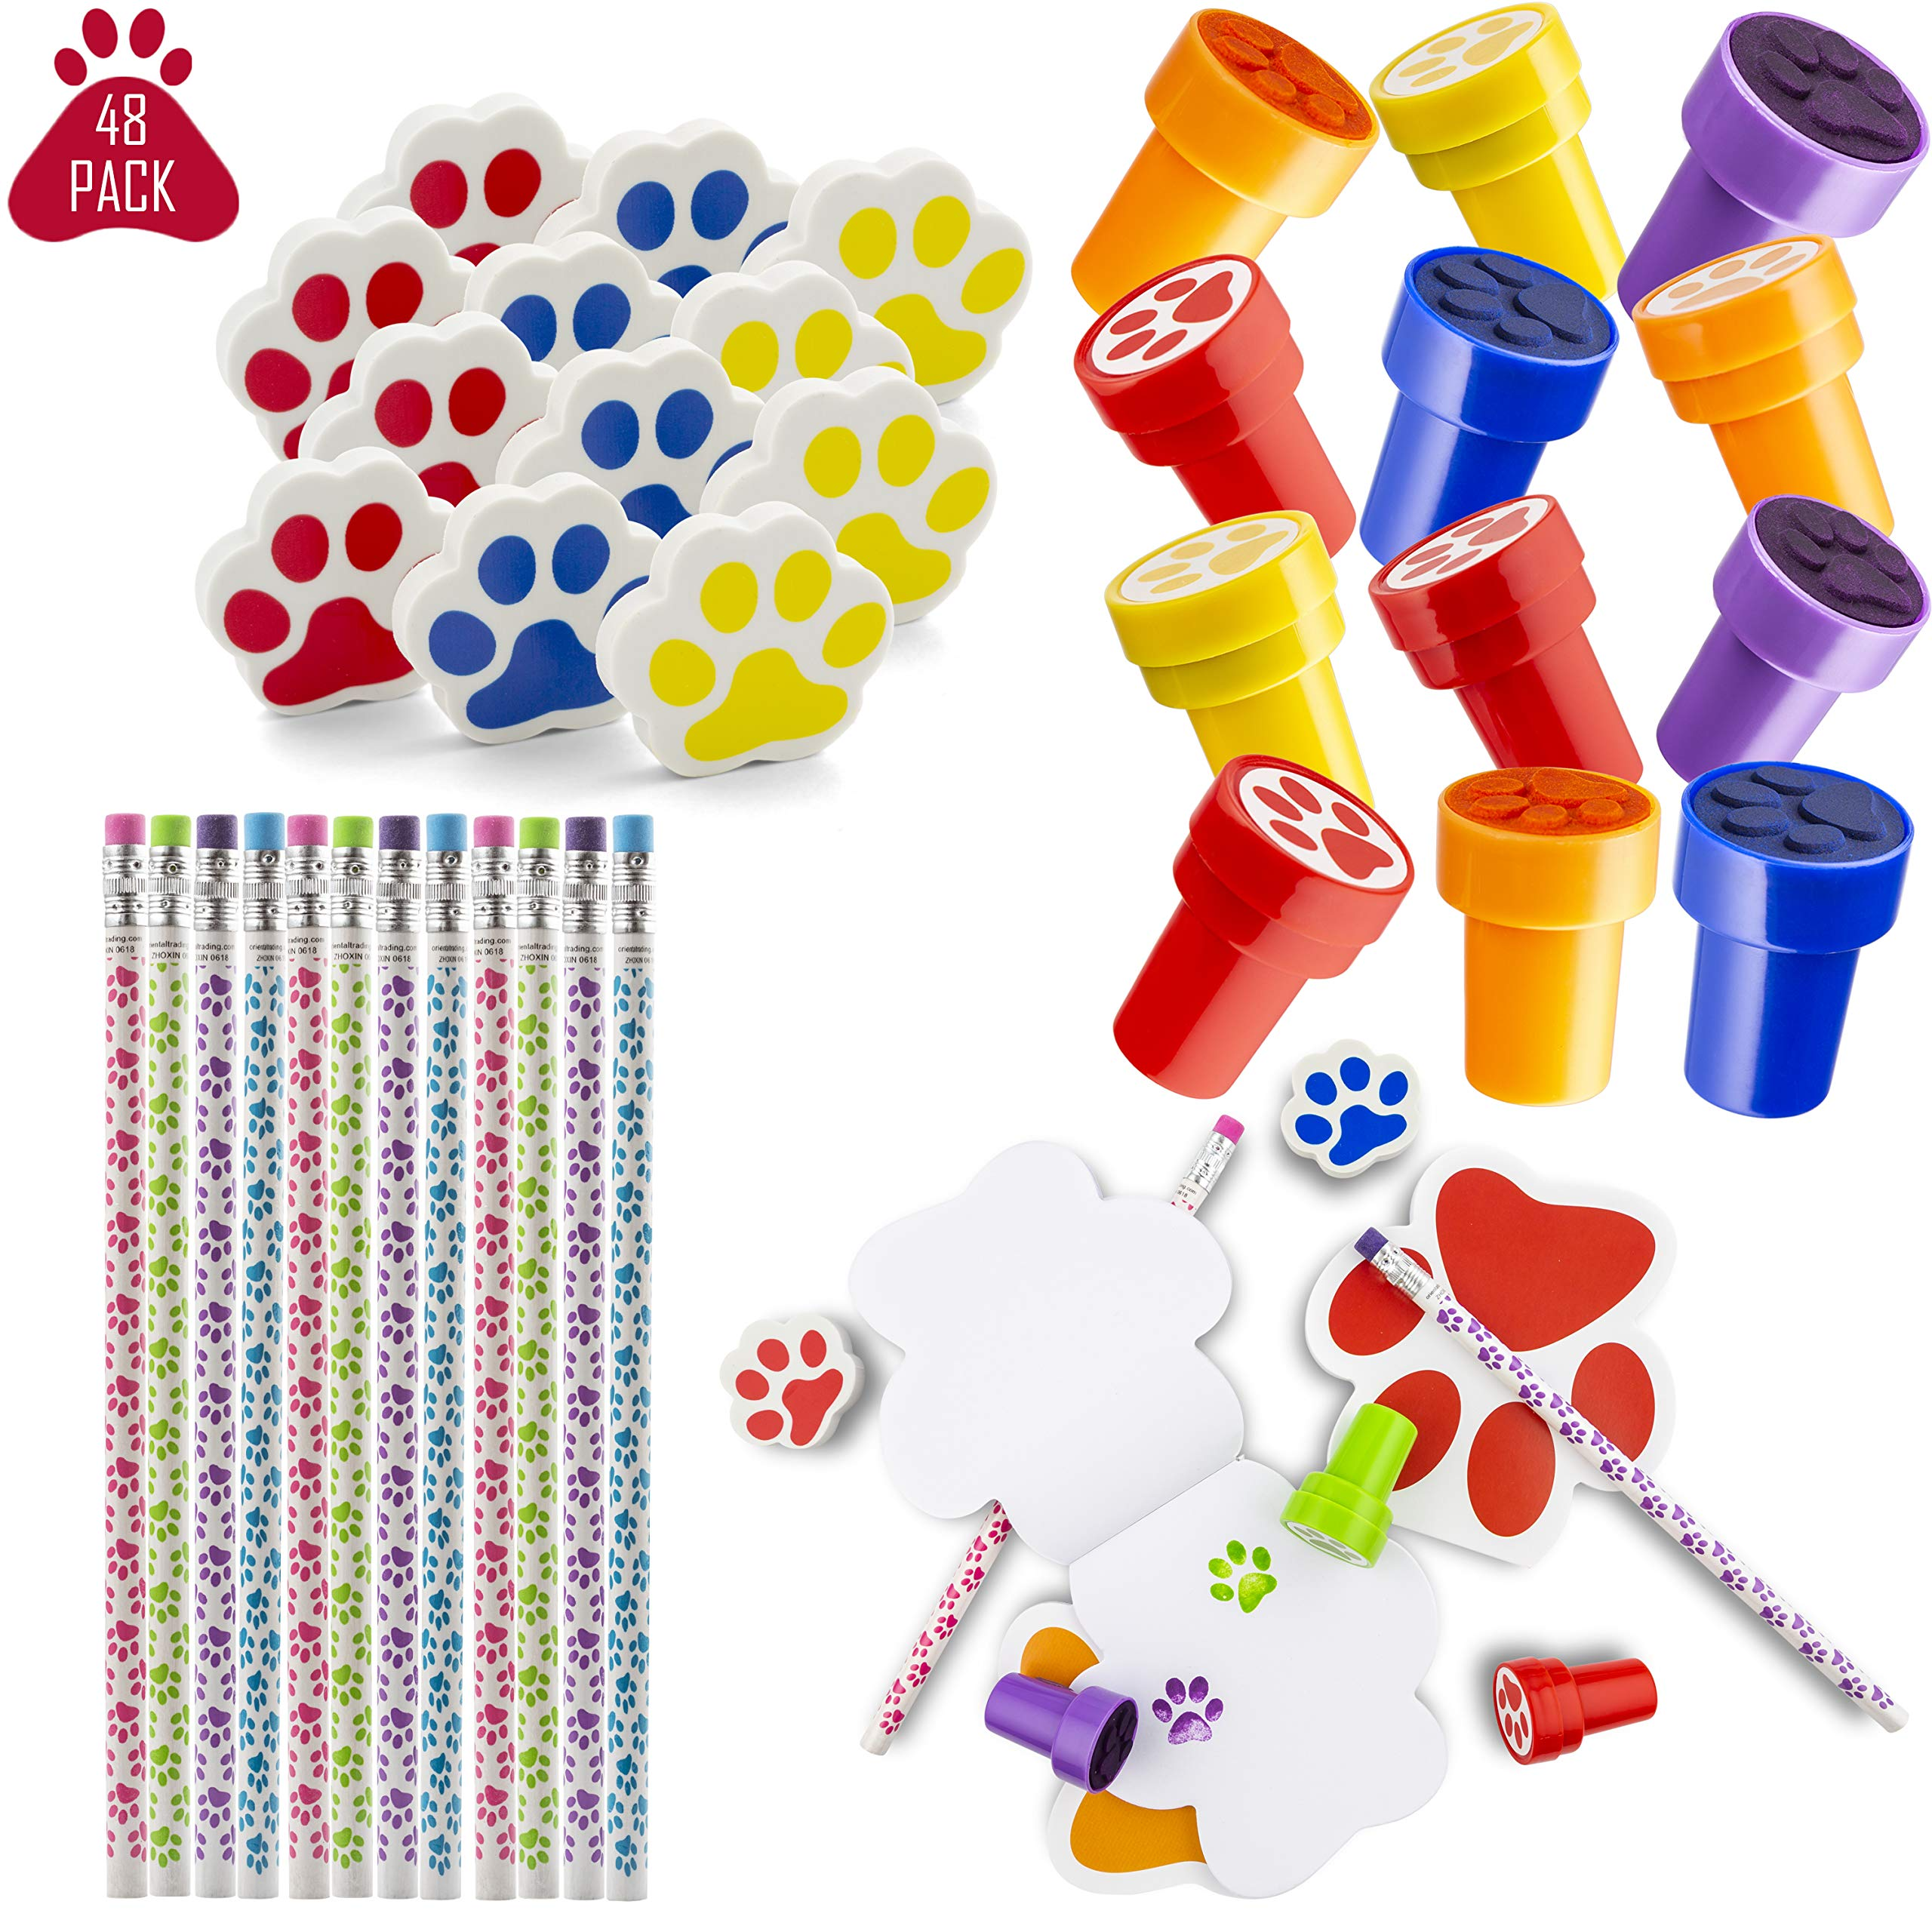 Favonir™ Paw Print Stationery Party Souvenirs Favors 48 Gift Pack – 12 Erasers – 12 Themed Booklets – 12 Pencils – 12 Stickers - Kids Birthday Party Supplies Bulk Set - Ideal As Party Favor Novelty Goody Bag Stuffer, Reward Prizes, carnival And Events